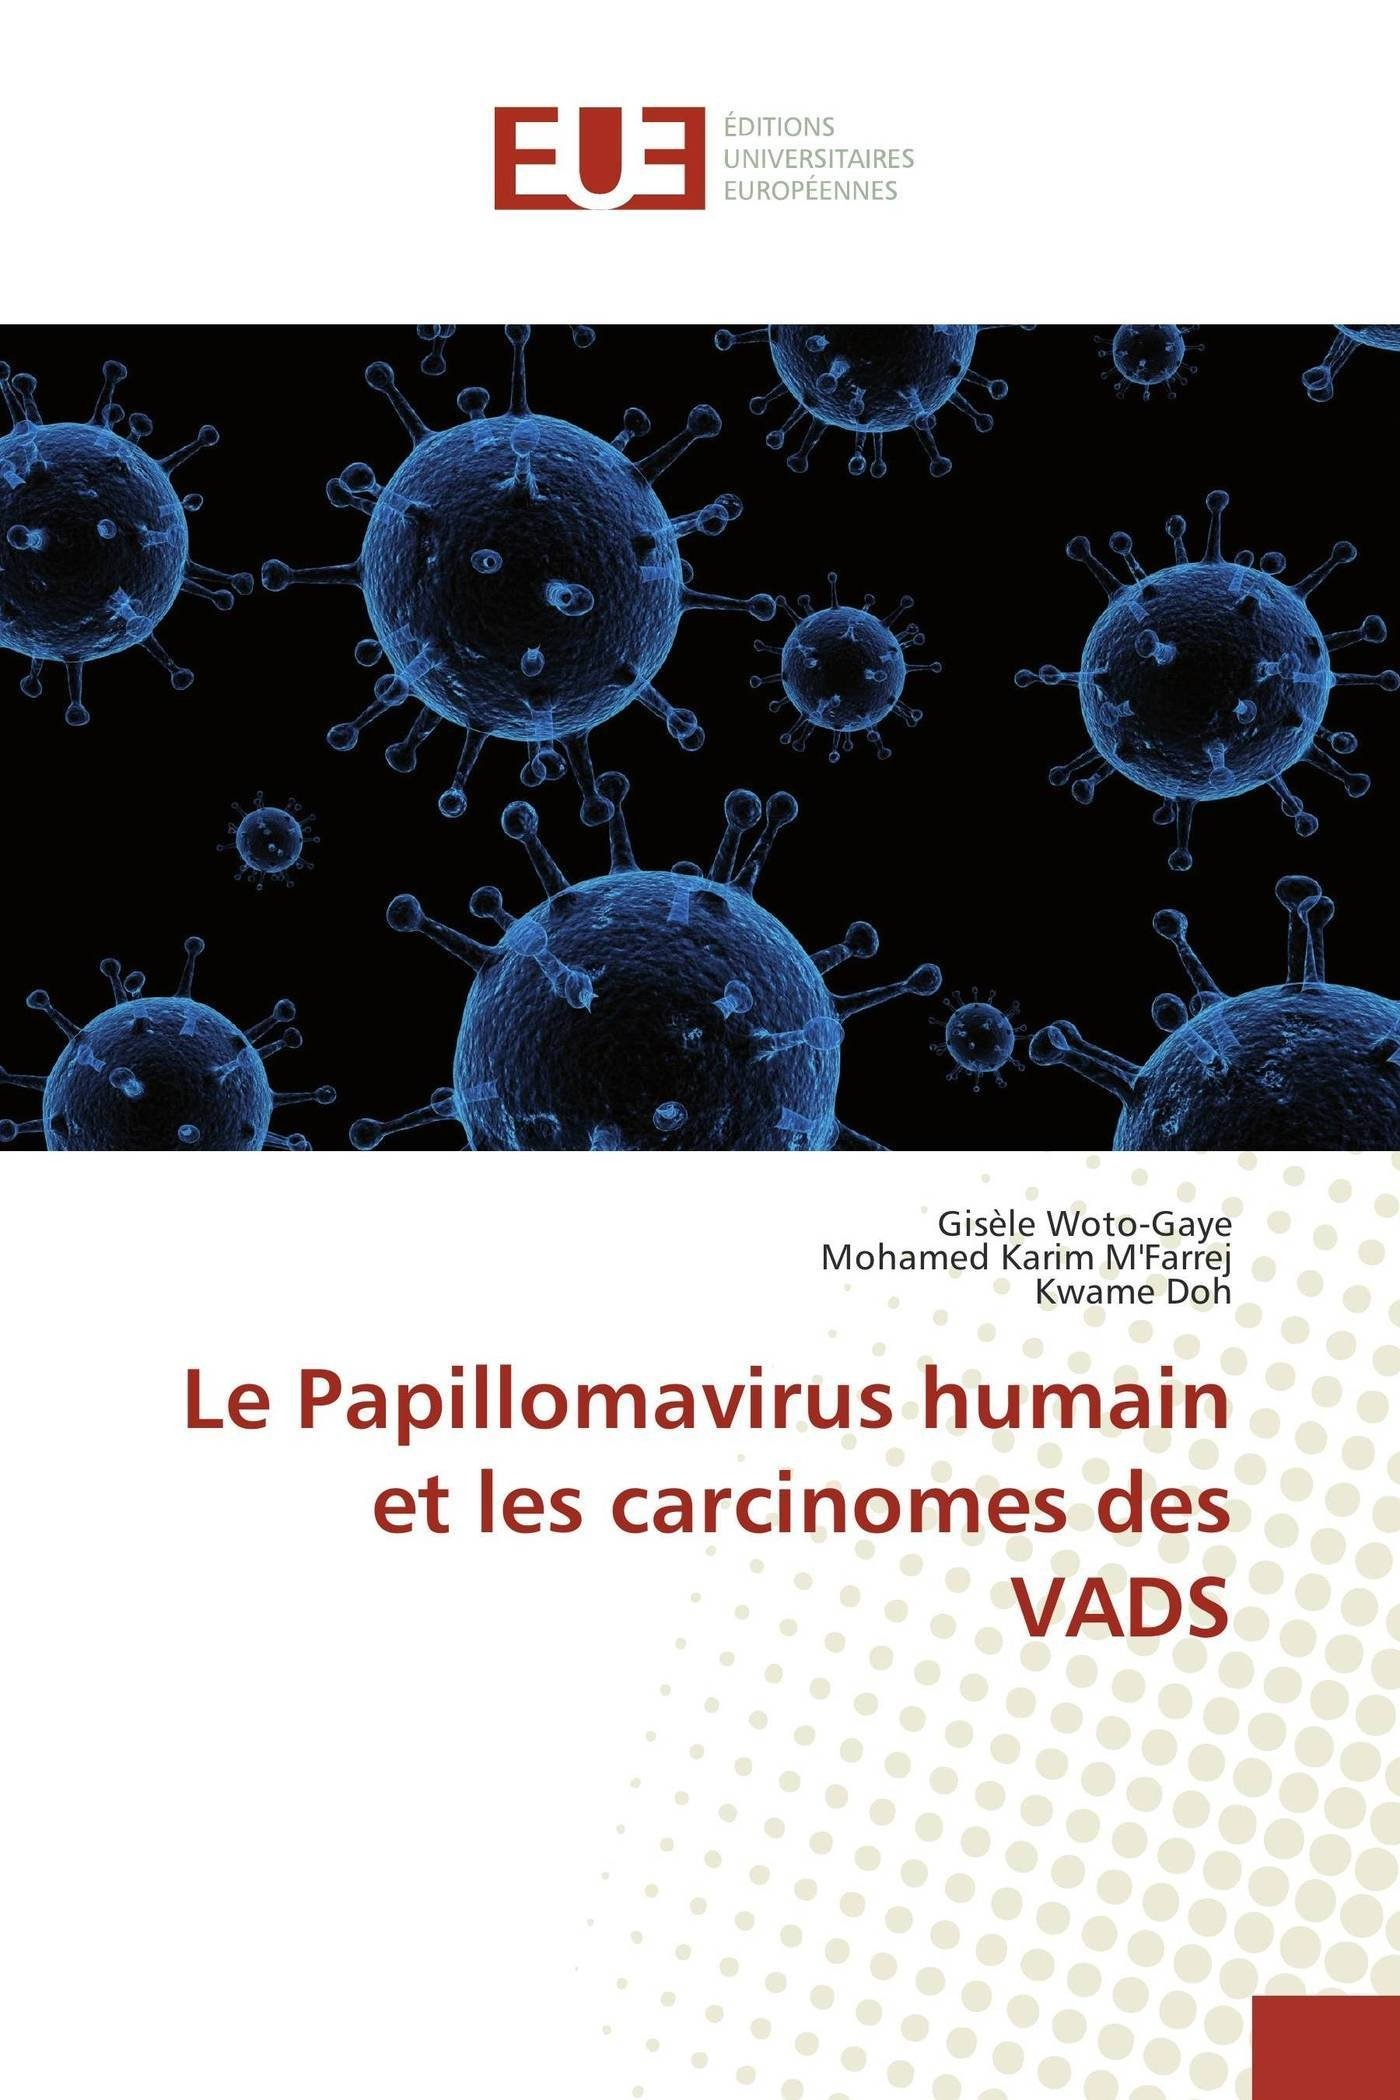 Human papillomavirus in french - eng2ro.ro